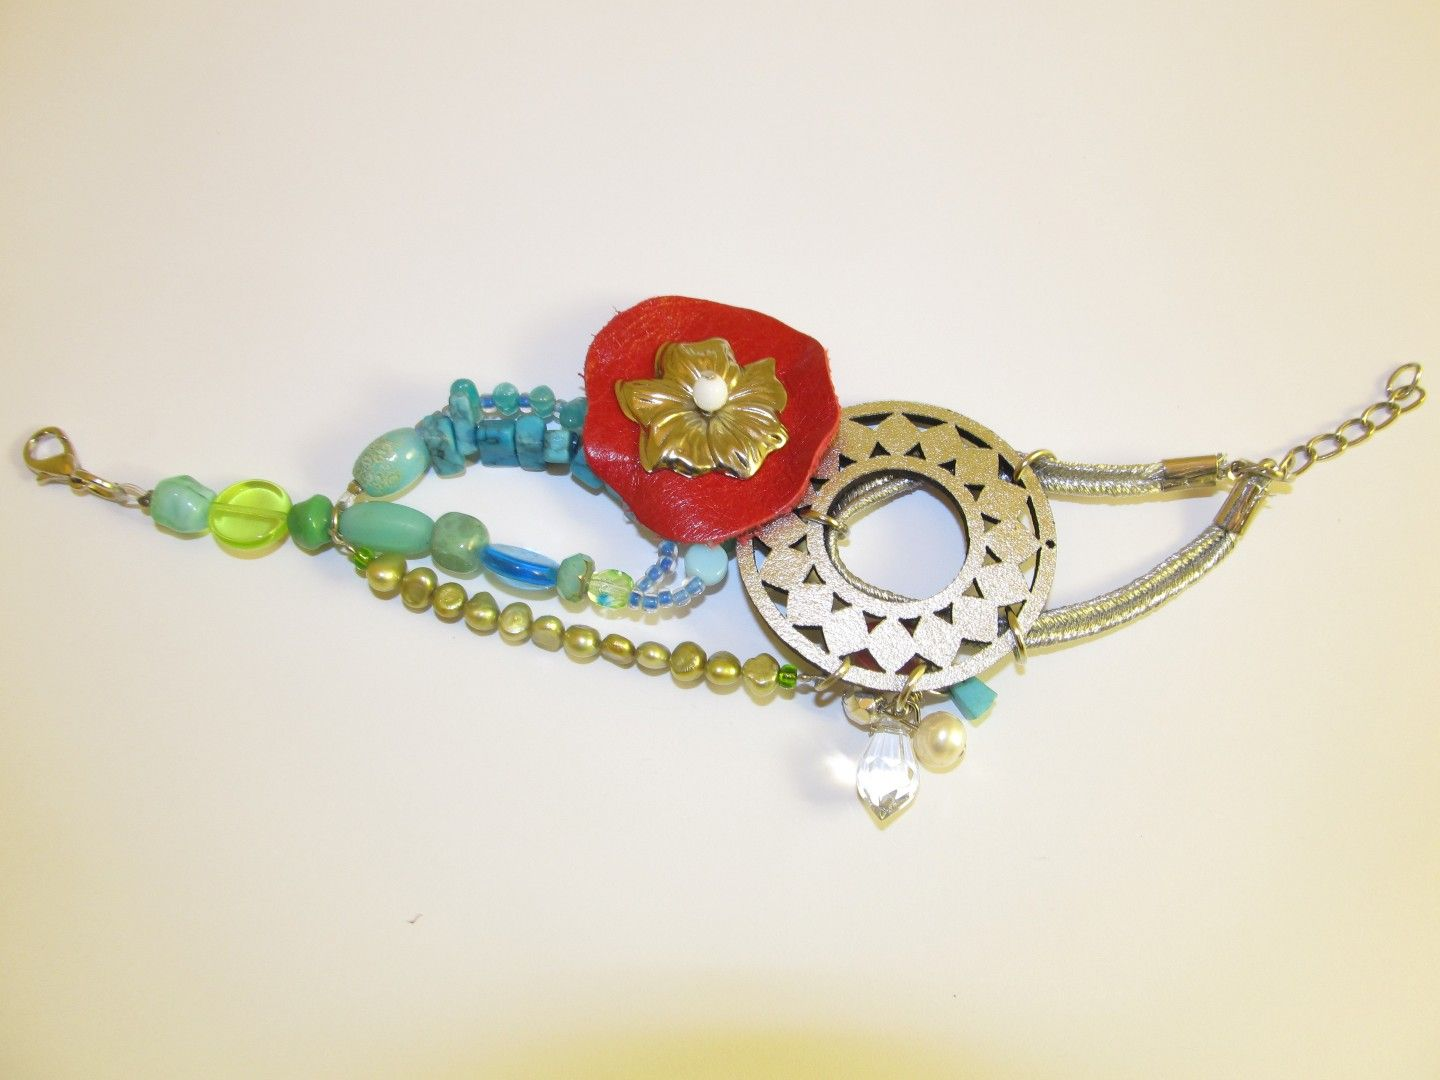 Handmade leather bracelet (1 pc)  Made with silver leather filigree, red leather part with metal silver tone flower, silver cord, gree freshwater pearls, turquoise chips and glass beads.